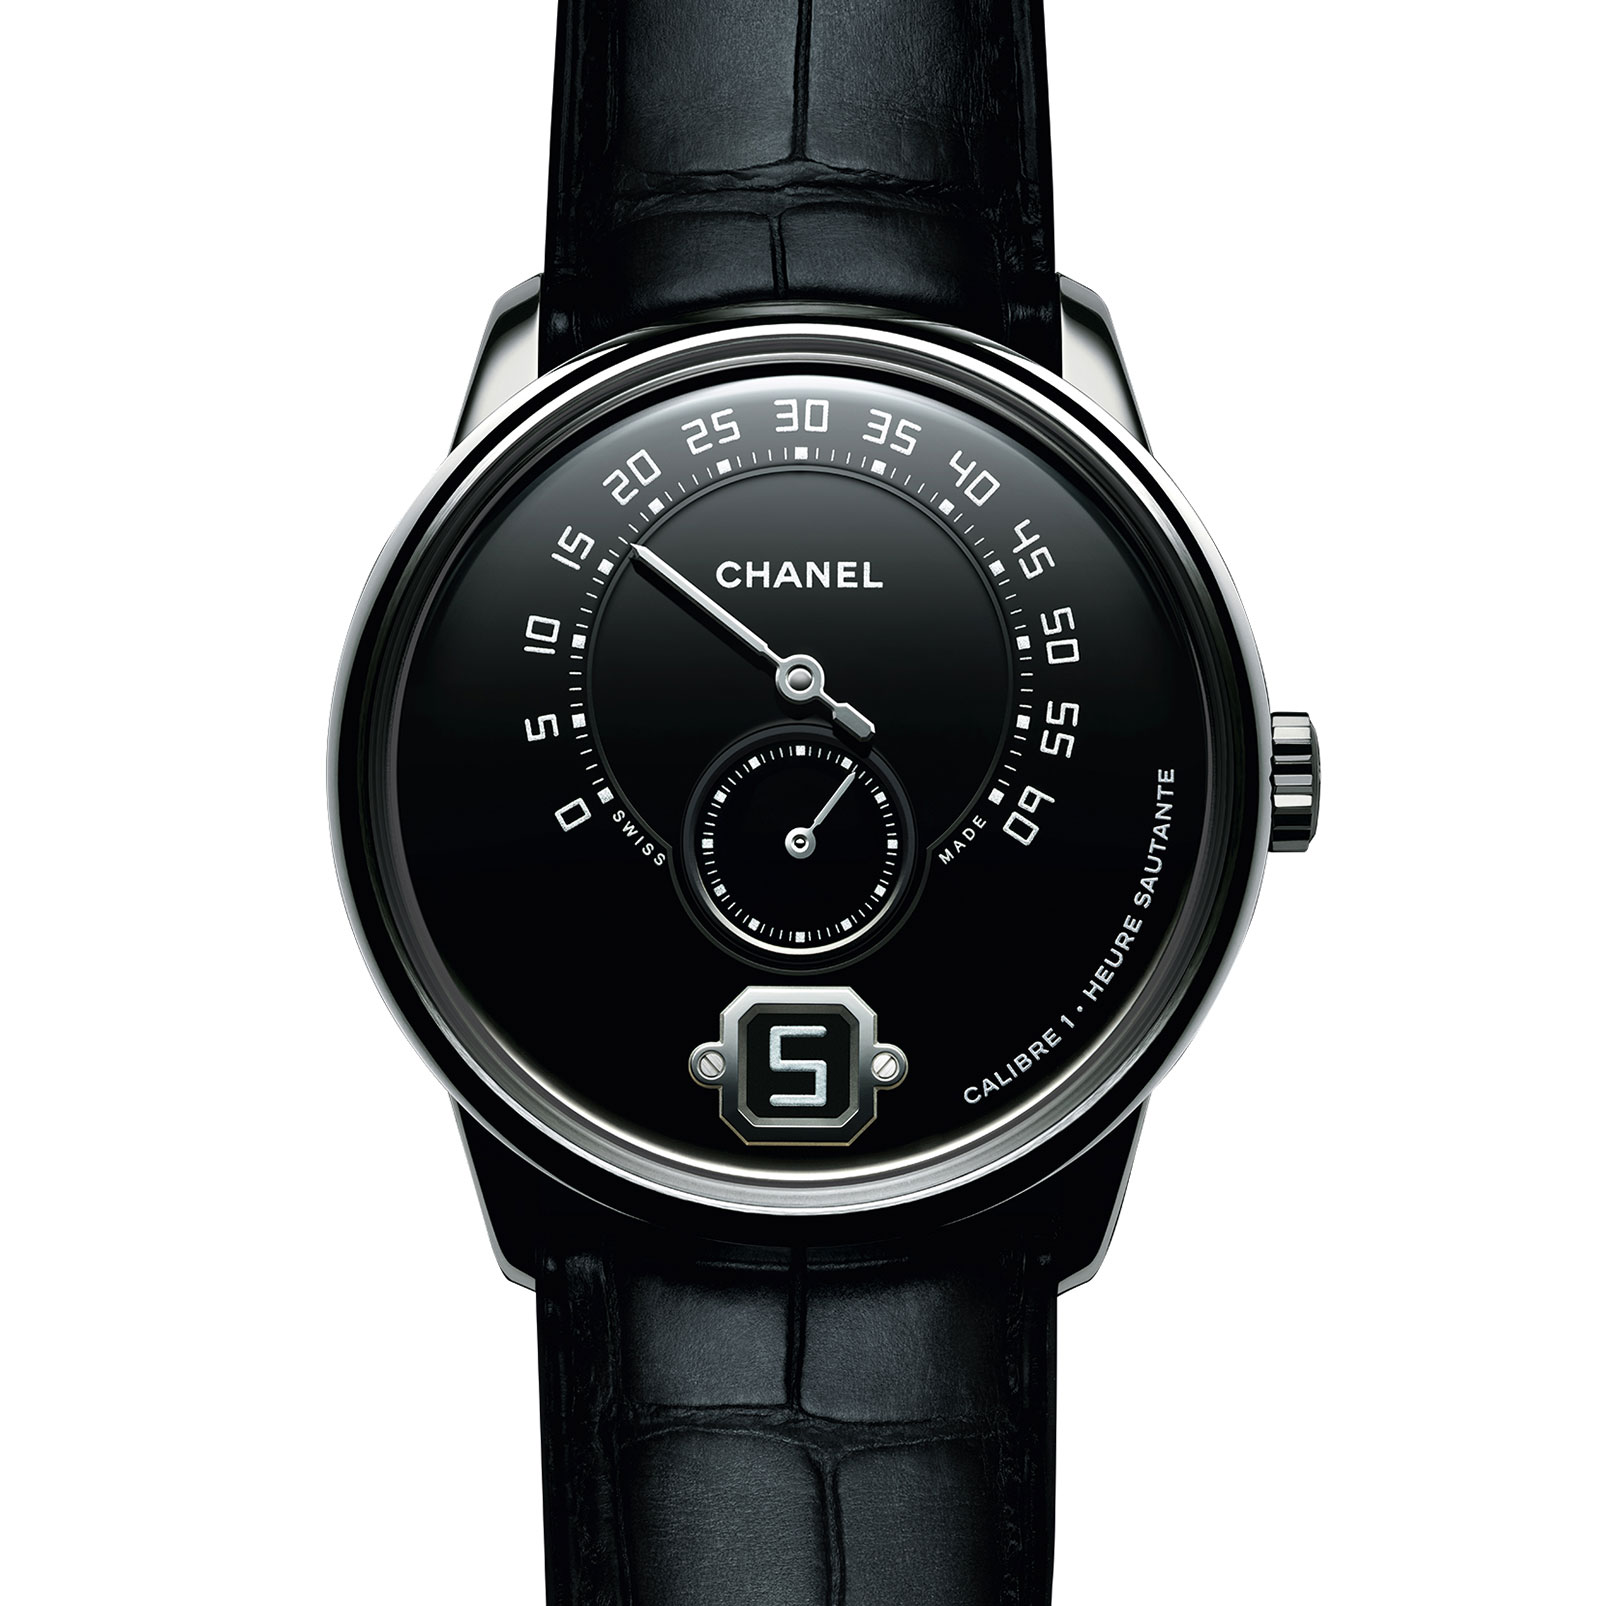 Chanel Monsieur de Chanel platinum